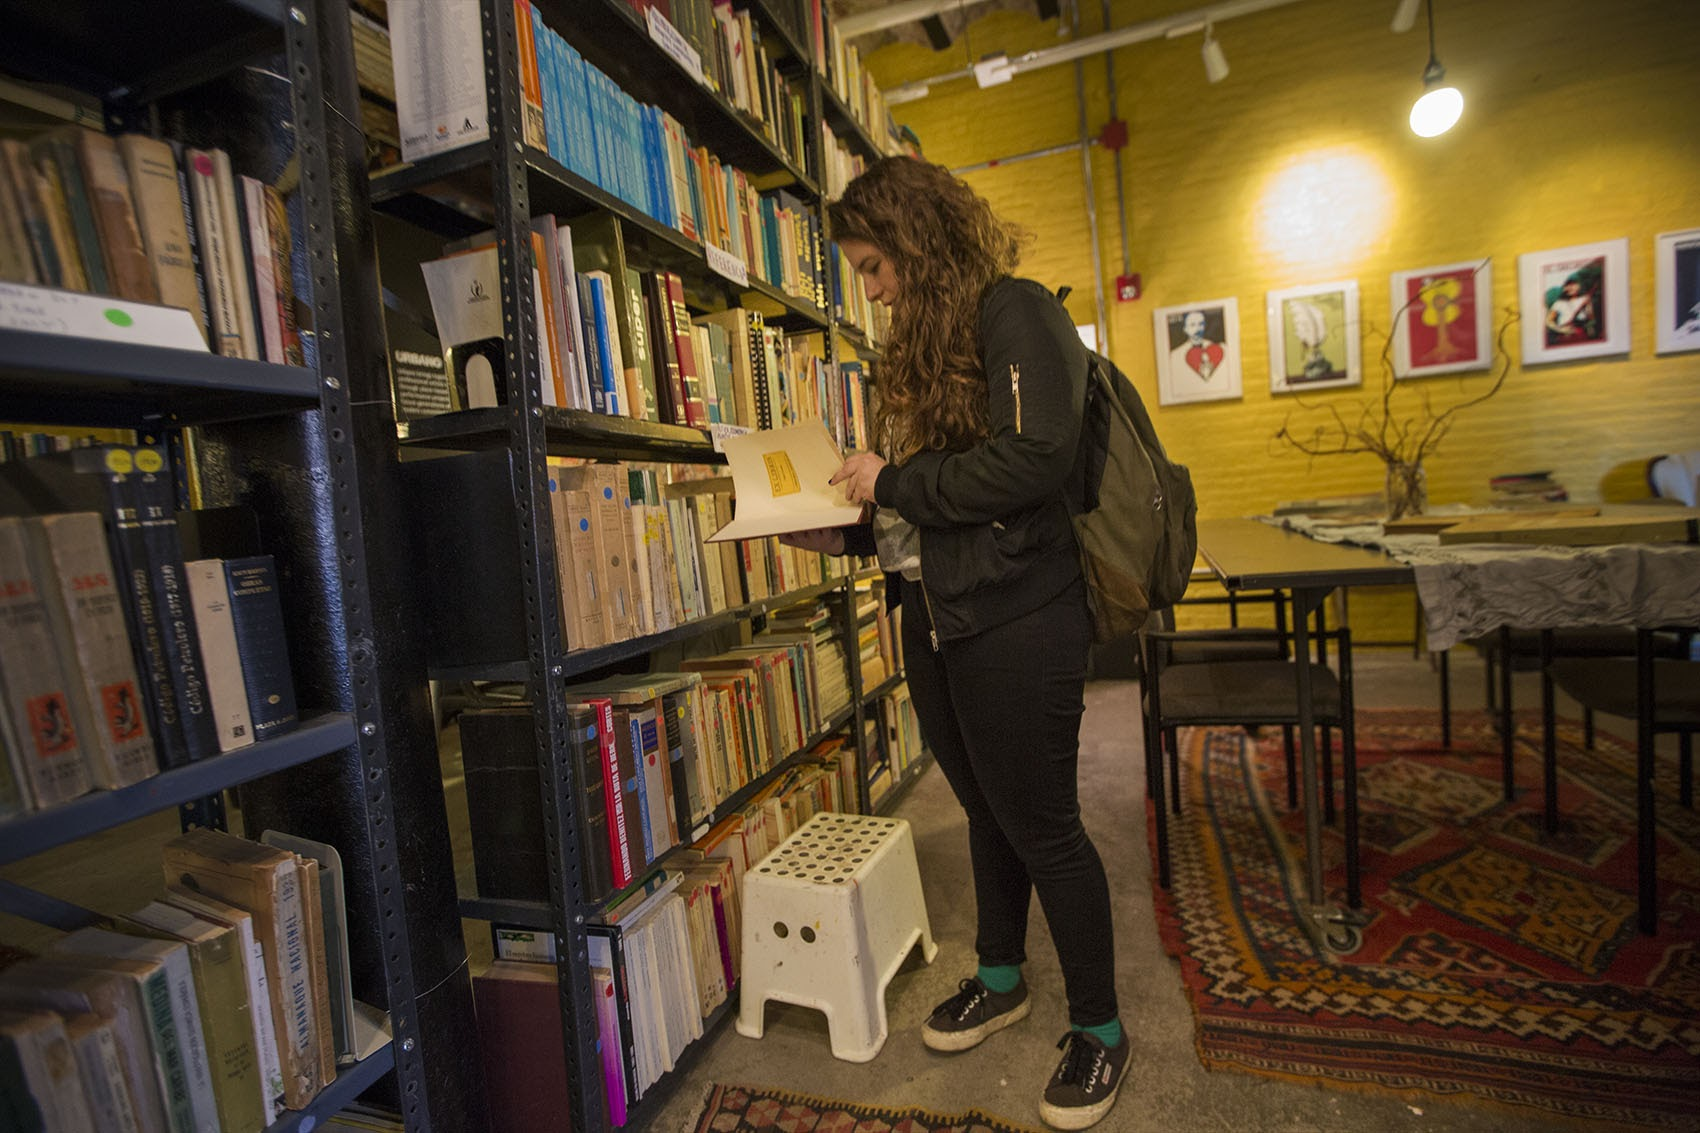 Tovia Siegel, of Watertown, looks at an encyclopedia from the reference section of Librería Donceles. She just returned from Chile after working there for six months as a teacher.  (Jesse Costa/WBUR)